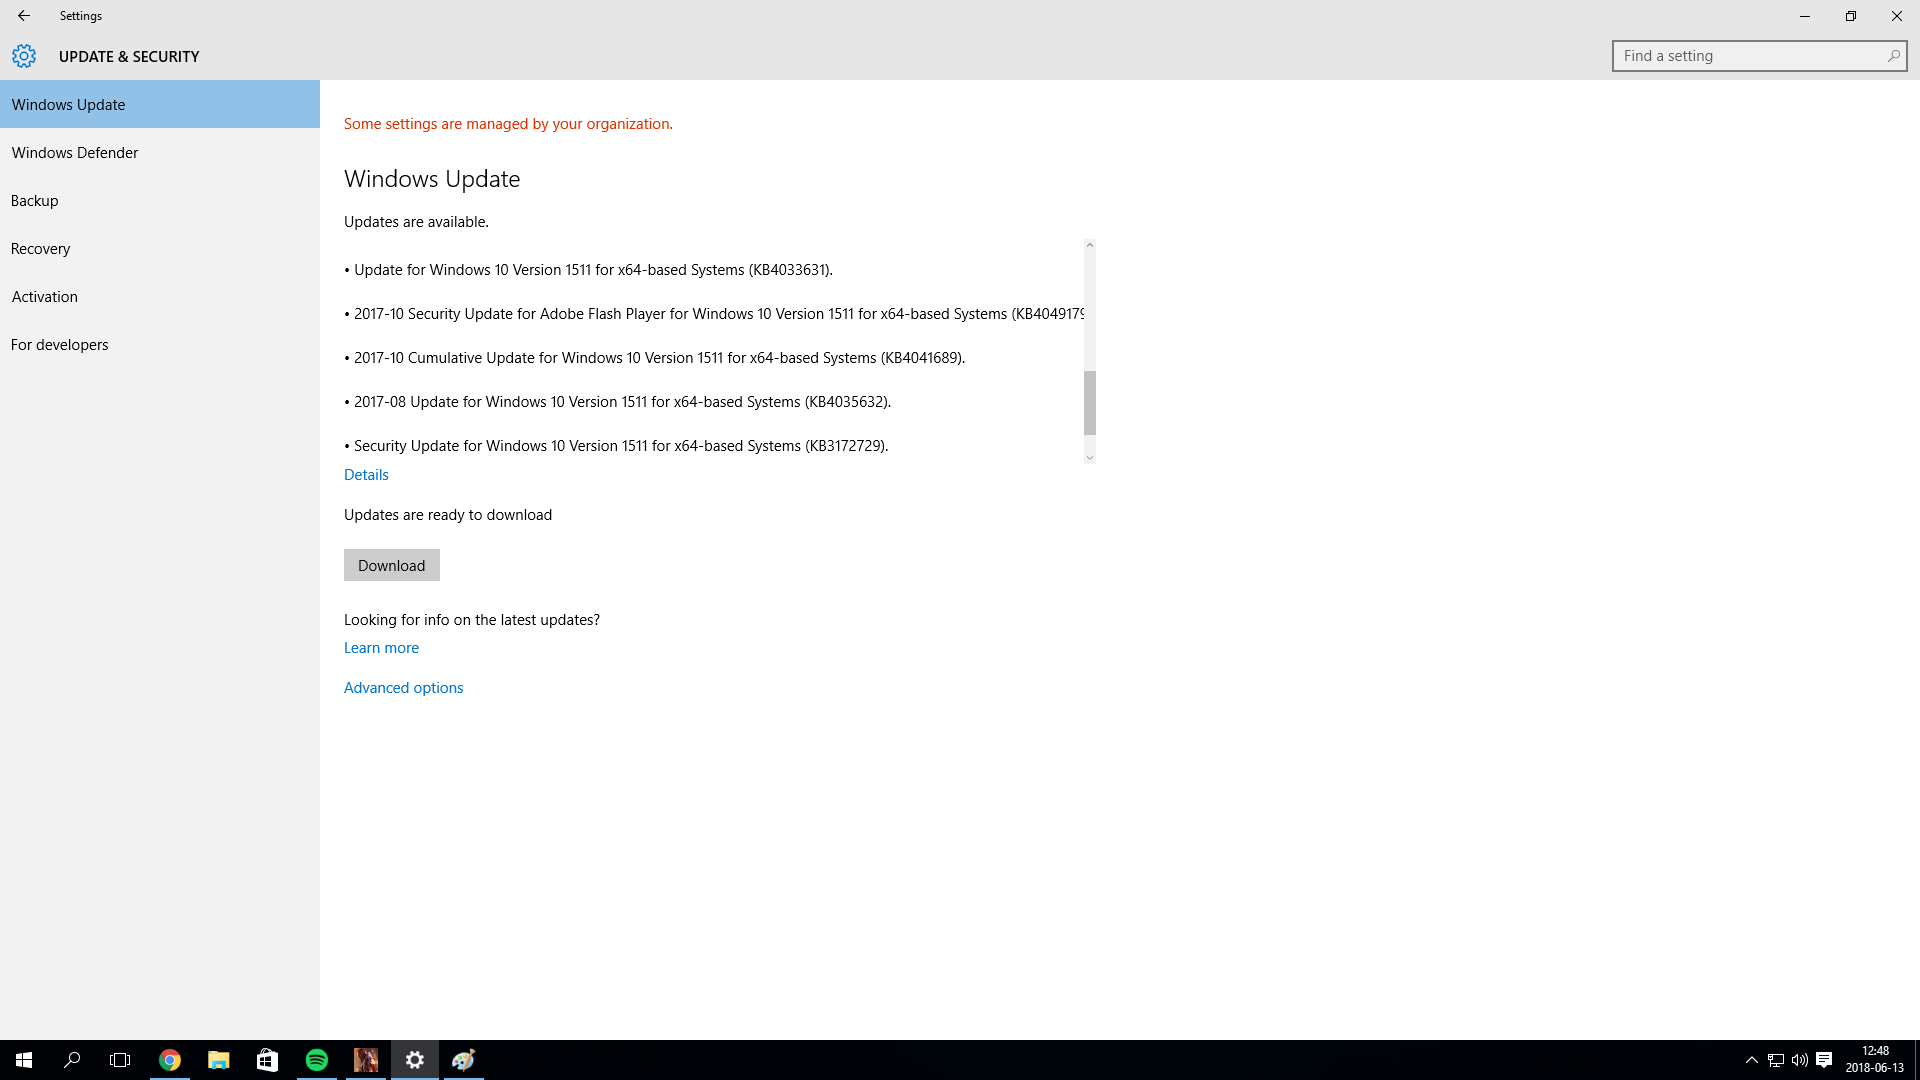 security update for windows 10 for x64-based systems download